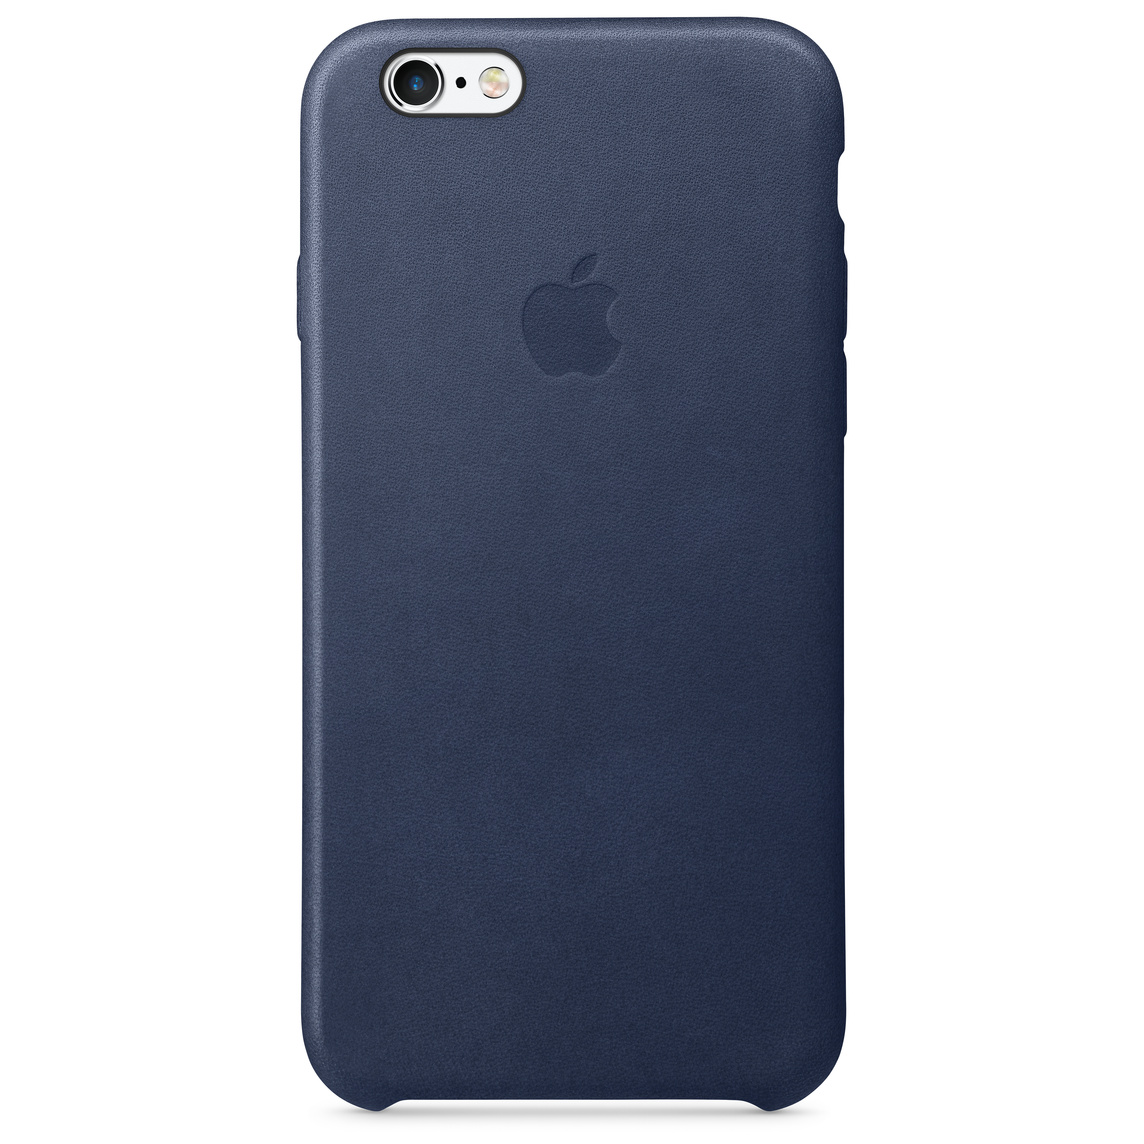 brand new 645ae c9e1c iPhone 6 / 6s Leather Case - Midnight Blue